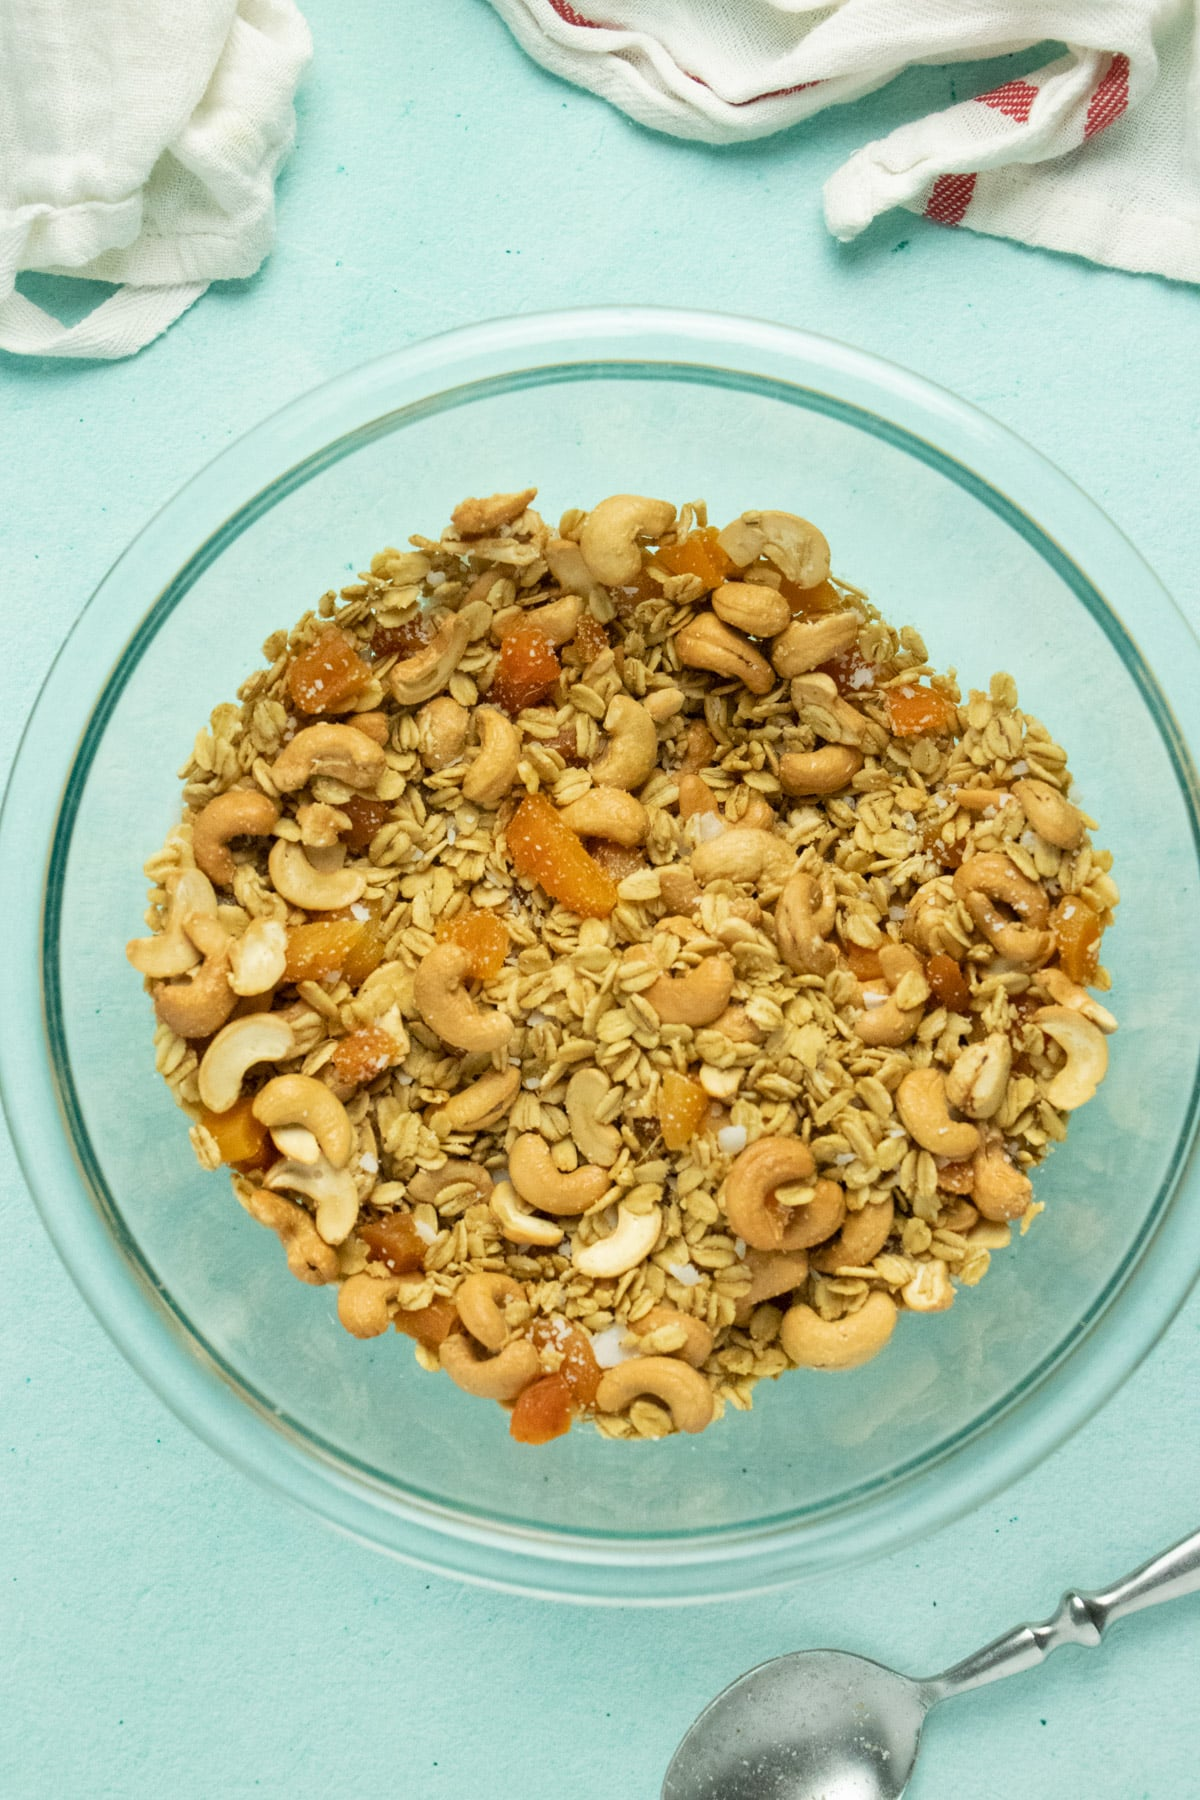 glass mixing bowl of homemade ginger granola with apricots, cashews, and coconut